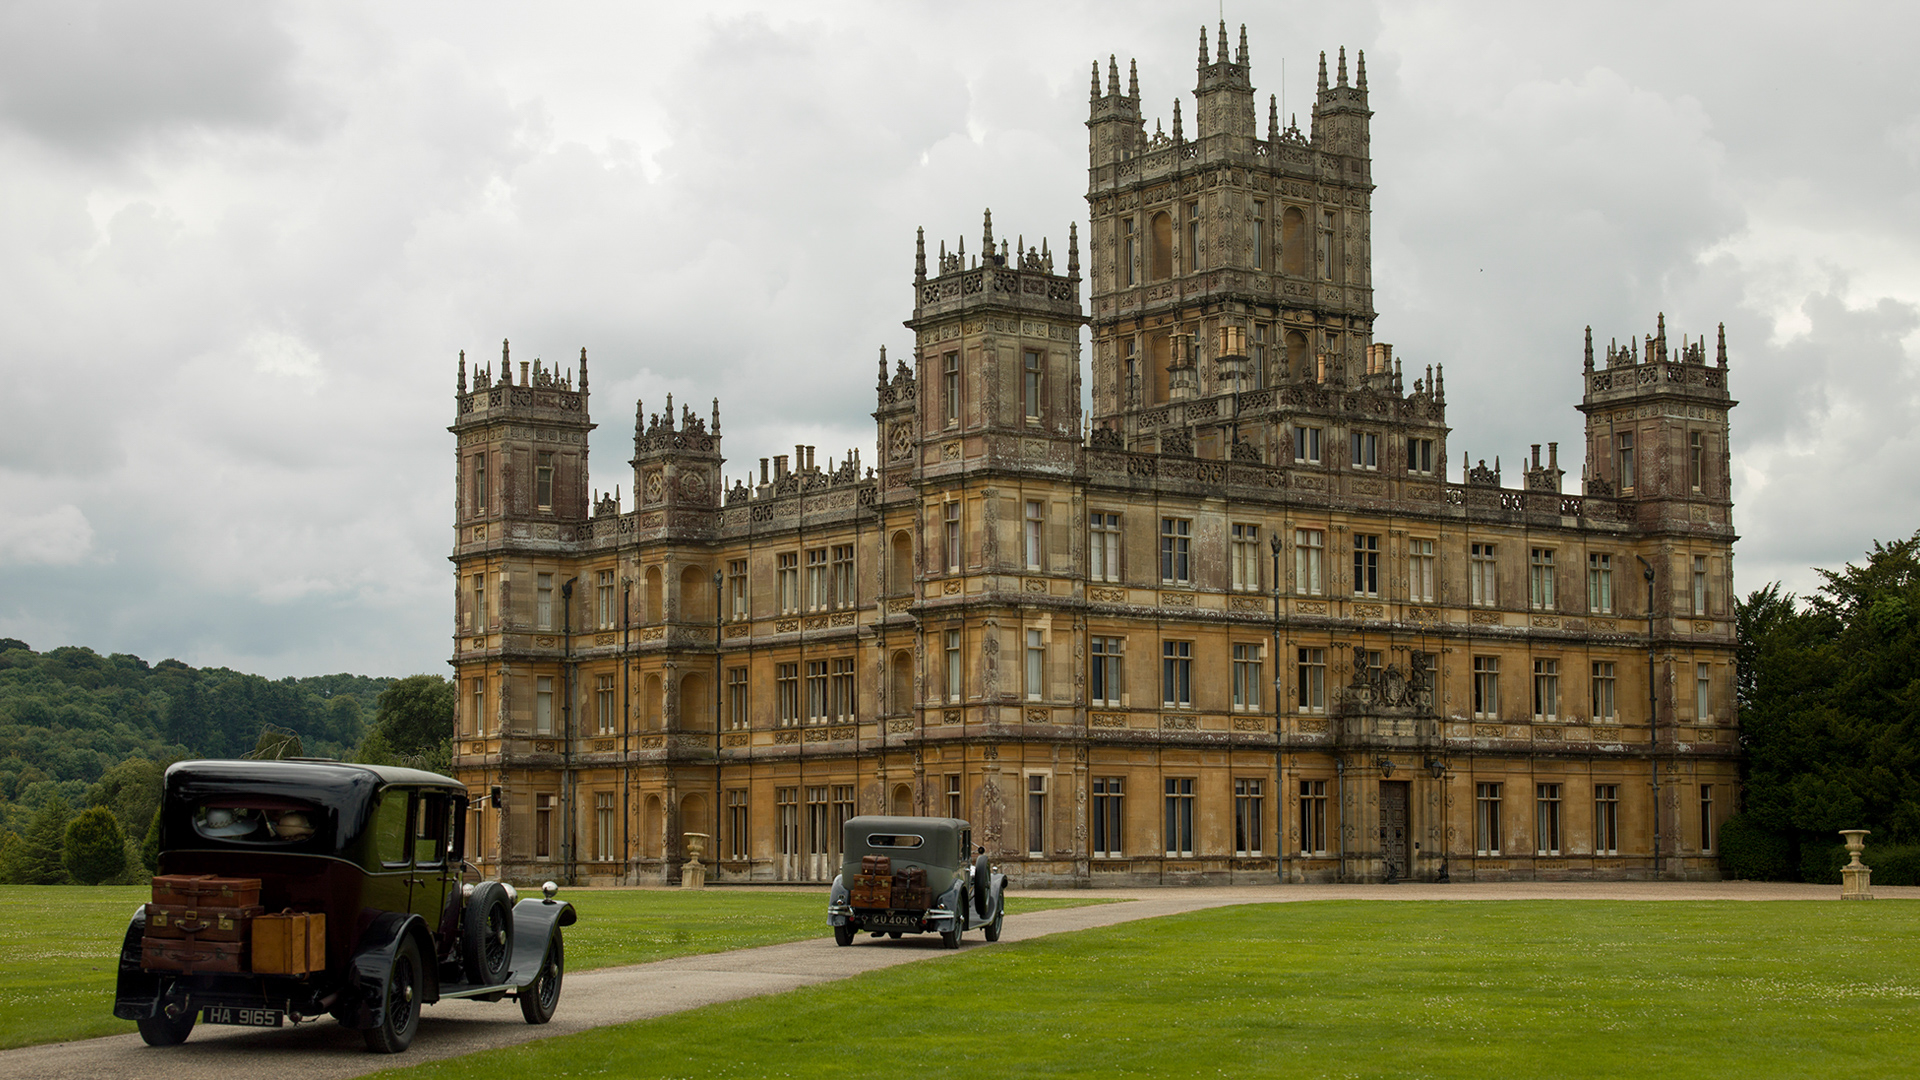 downton-abbey-s5-locations-quiz-icon-hires.jpg